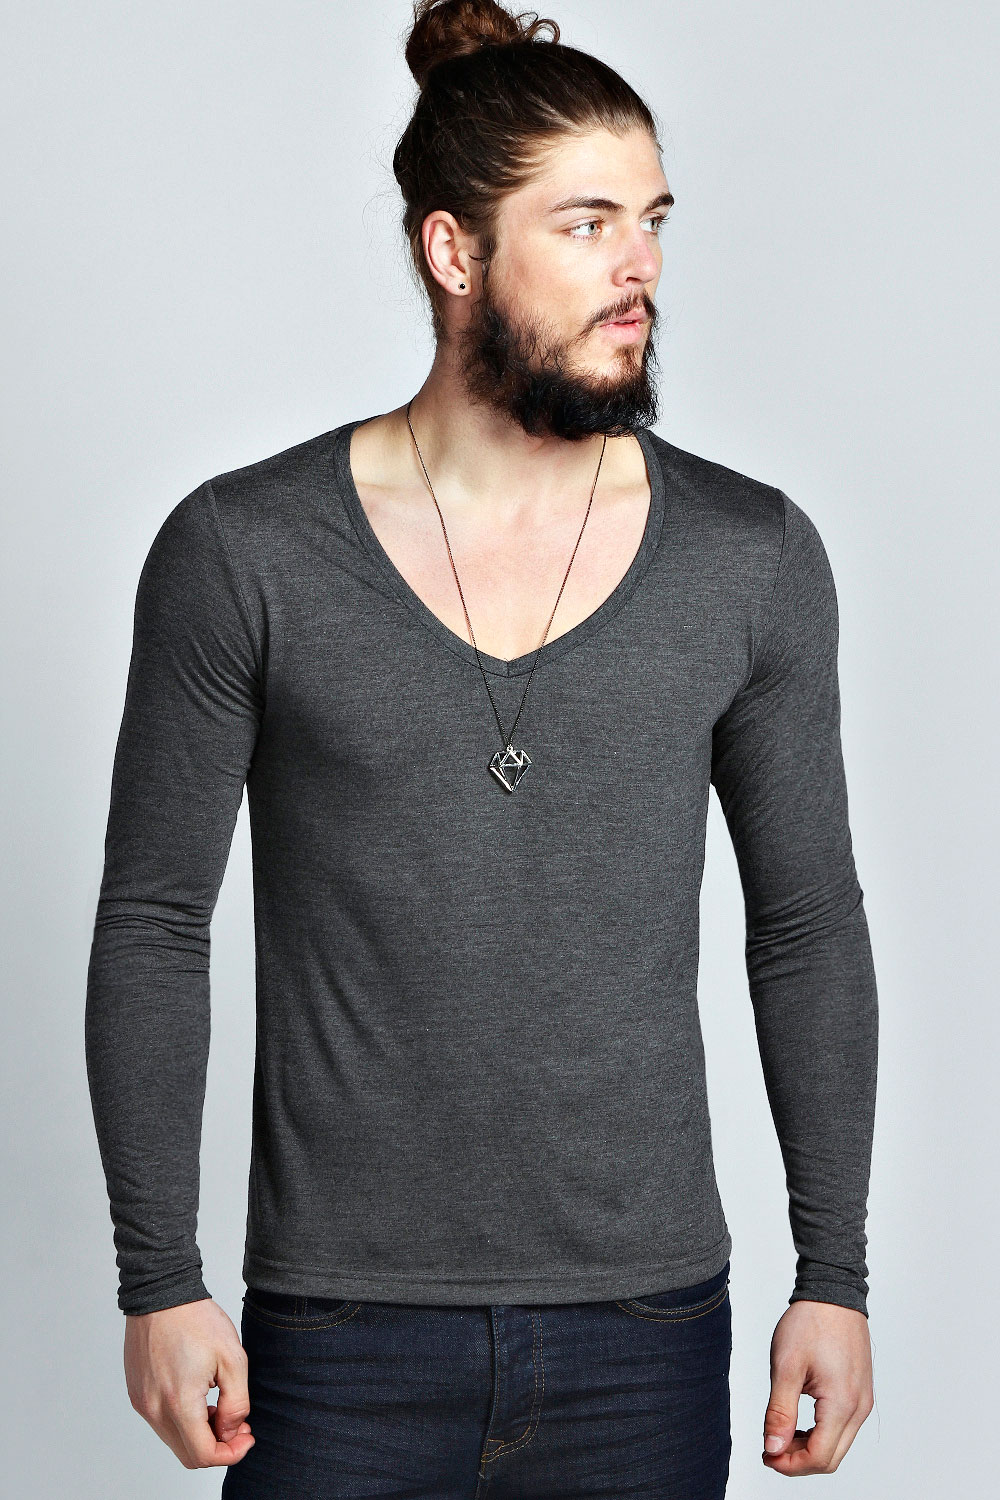 Boohoo Mens Basic Long Sleeve Deep V Neck T Shirt | eBay